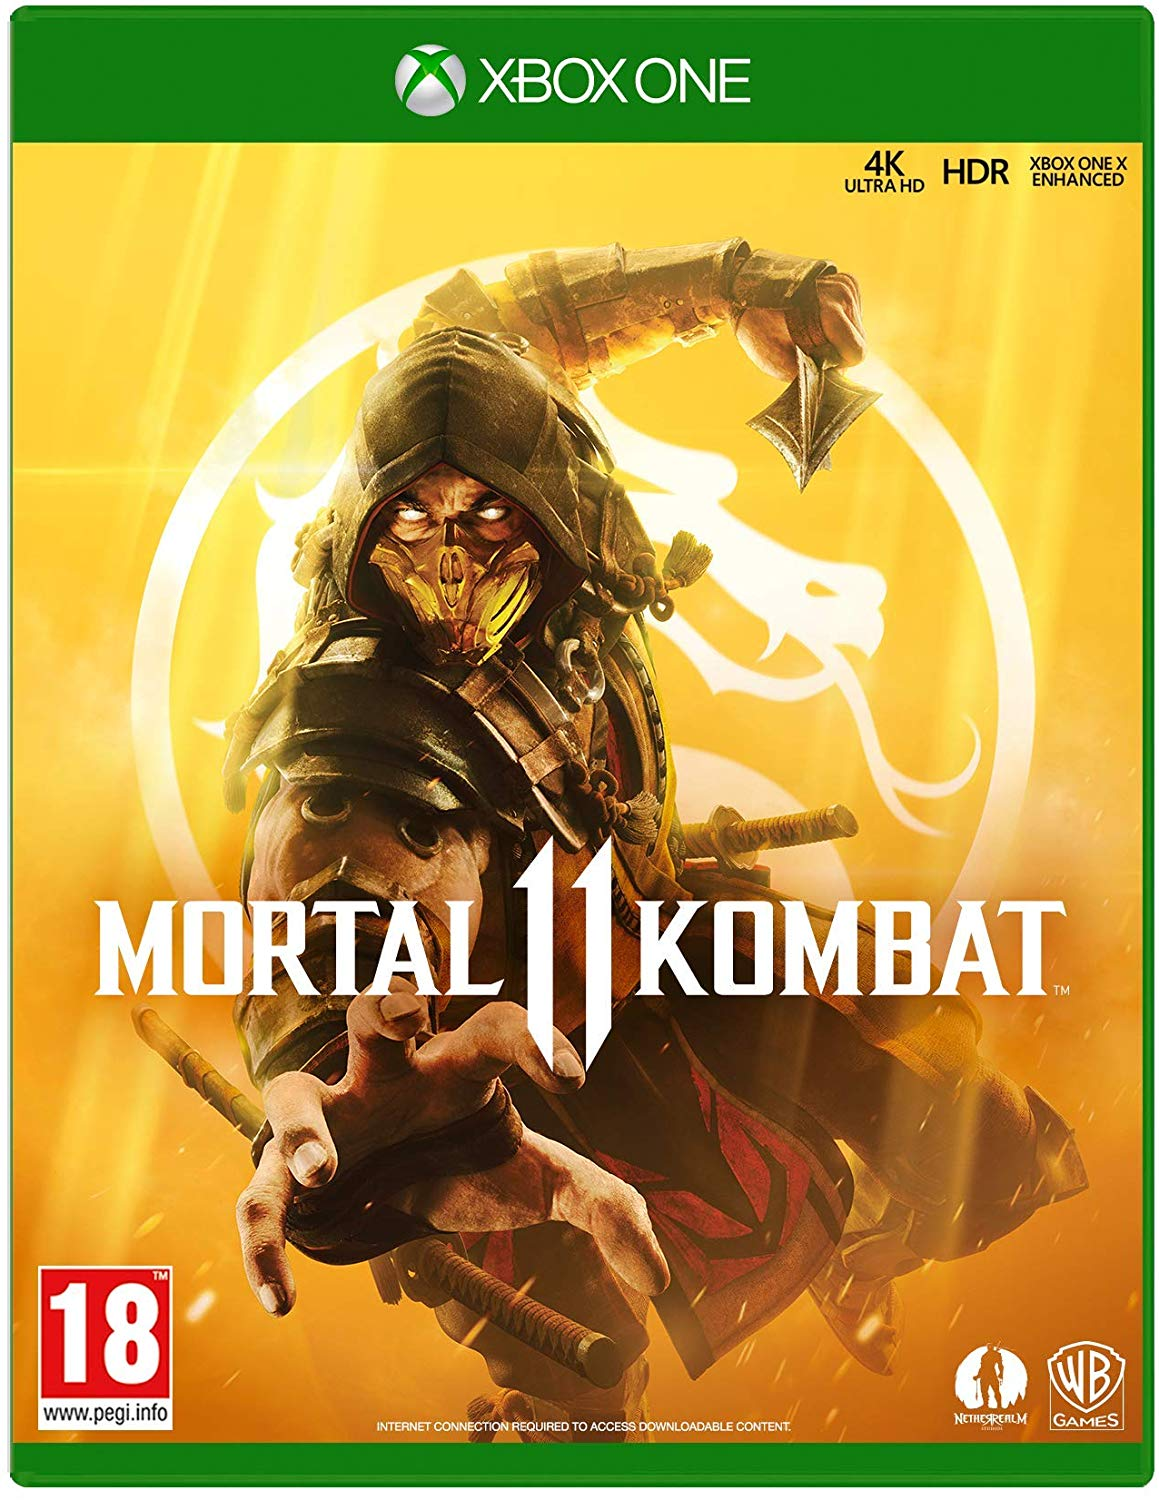 Mortal Kombat 11 / Xbox One / Account